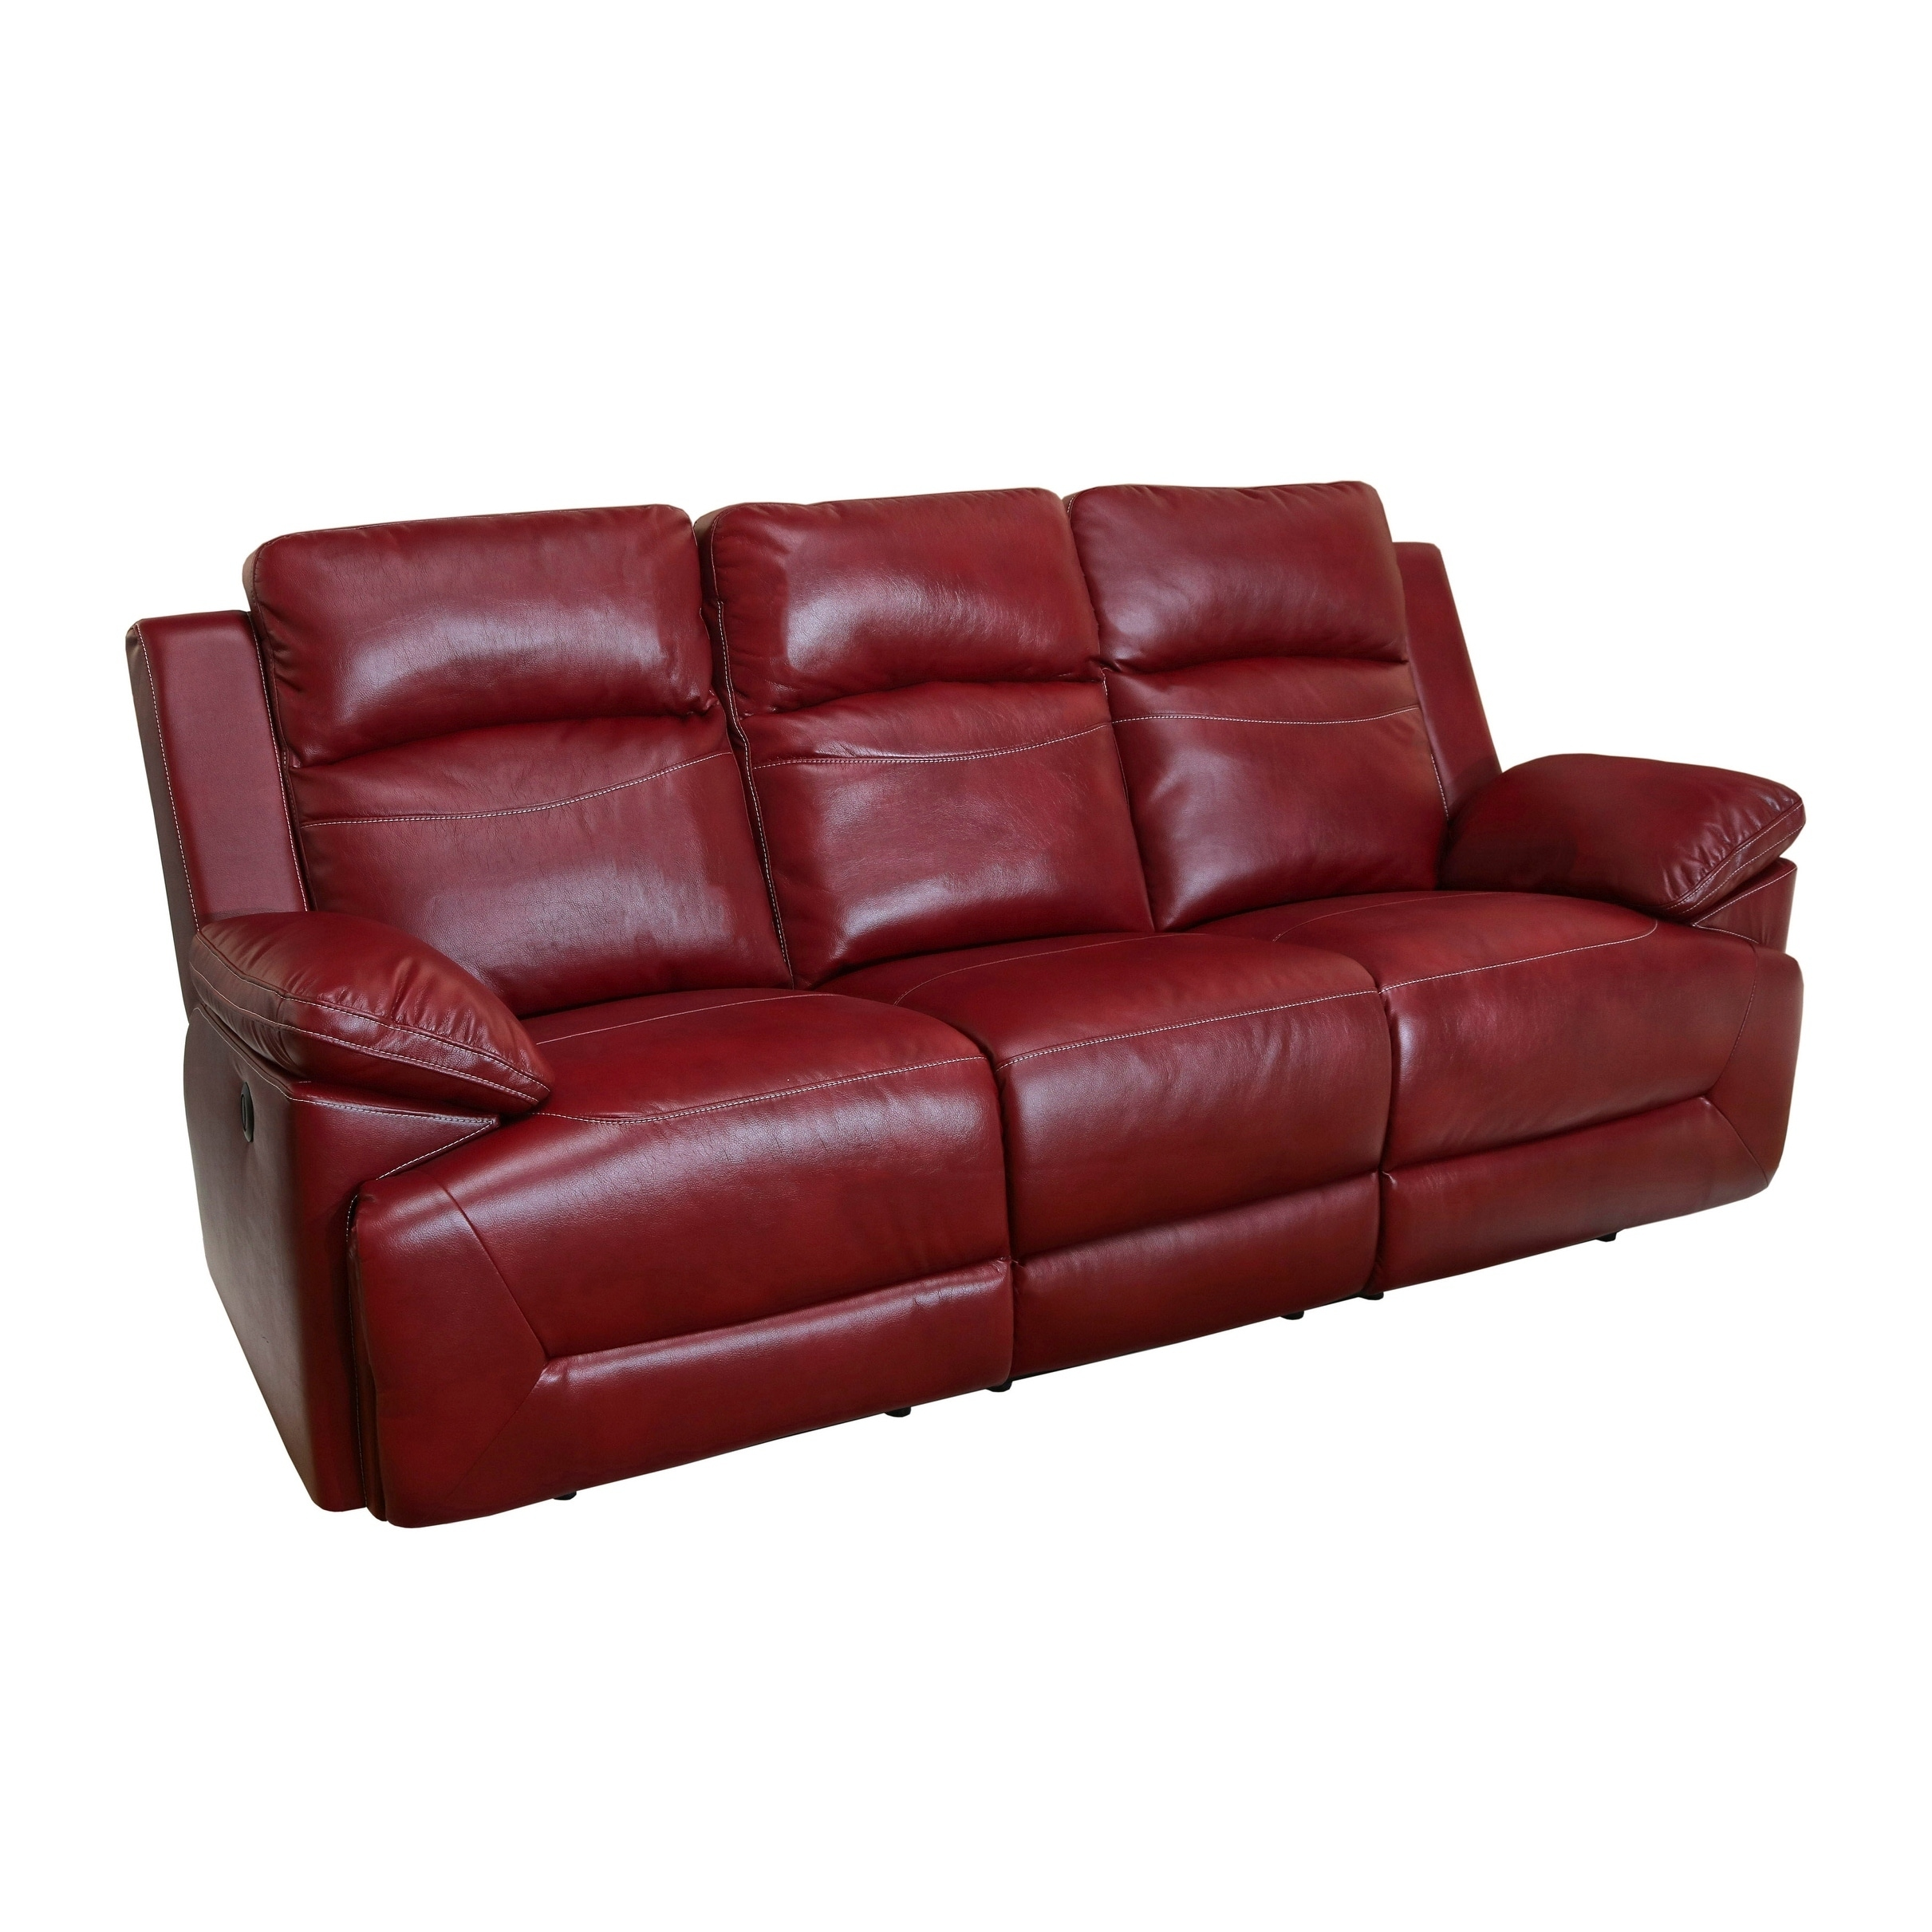 Cortez Red Power Motion Dual Recliner Sofa